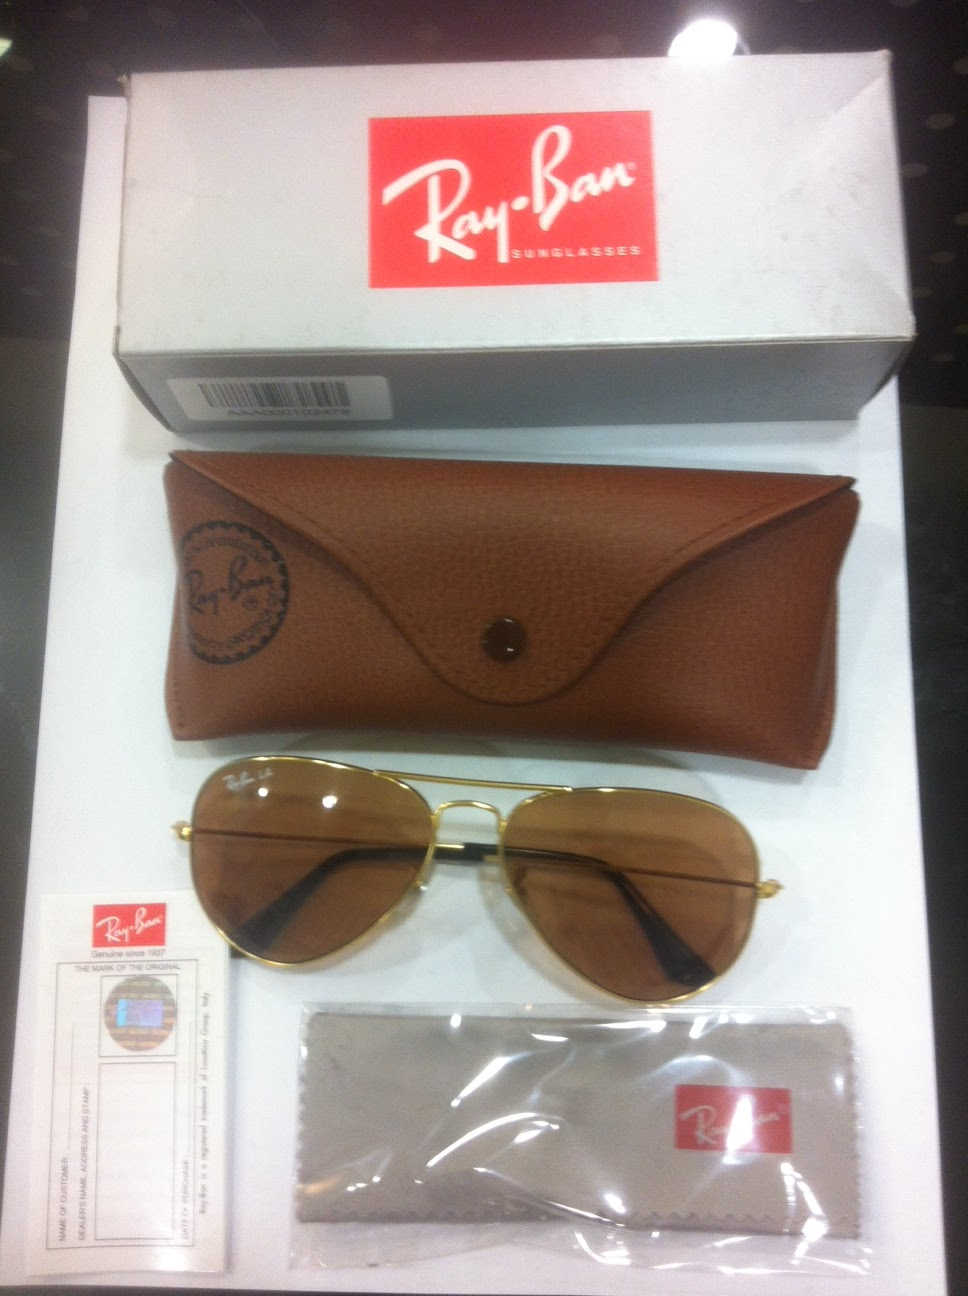 e42d7c3e4ac Lenskart.com RayBan Aviator Fake or Real    You Decide!